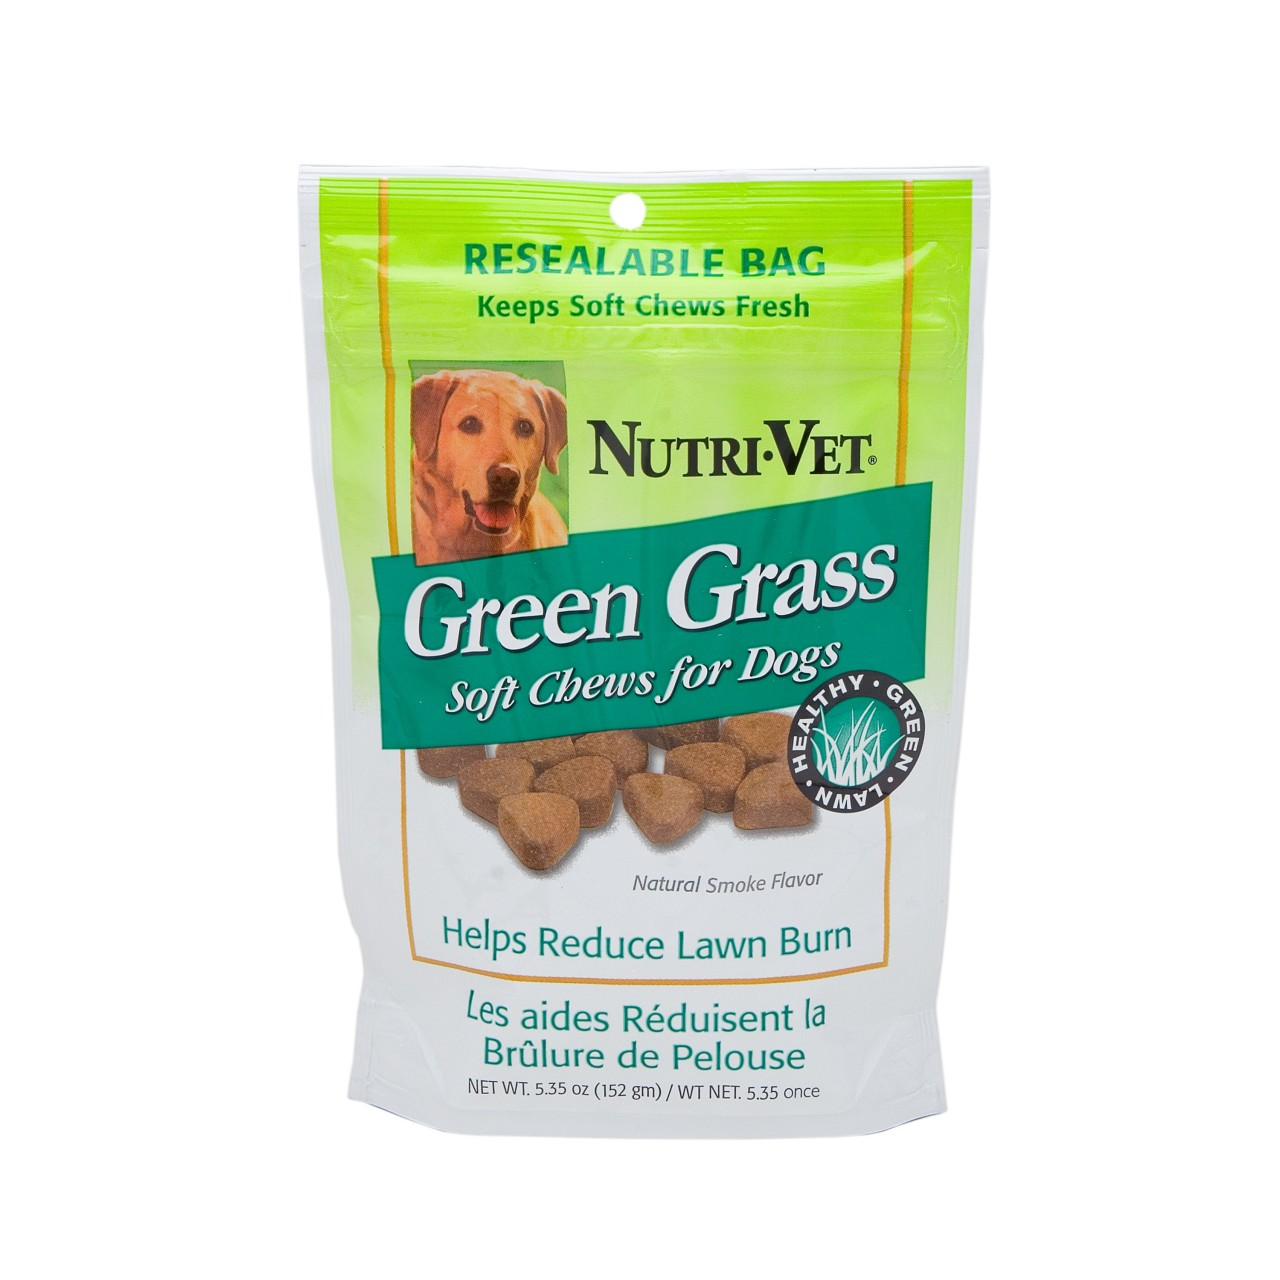 Nutri-Vet Green Grass Soft Chews for dogs